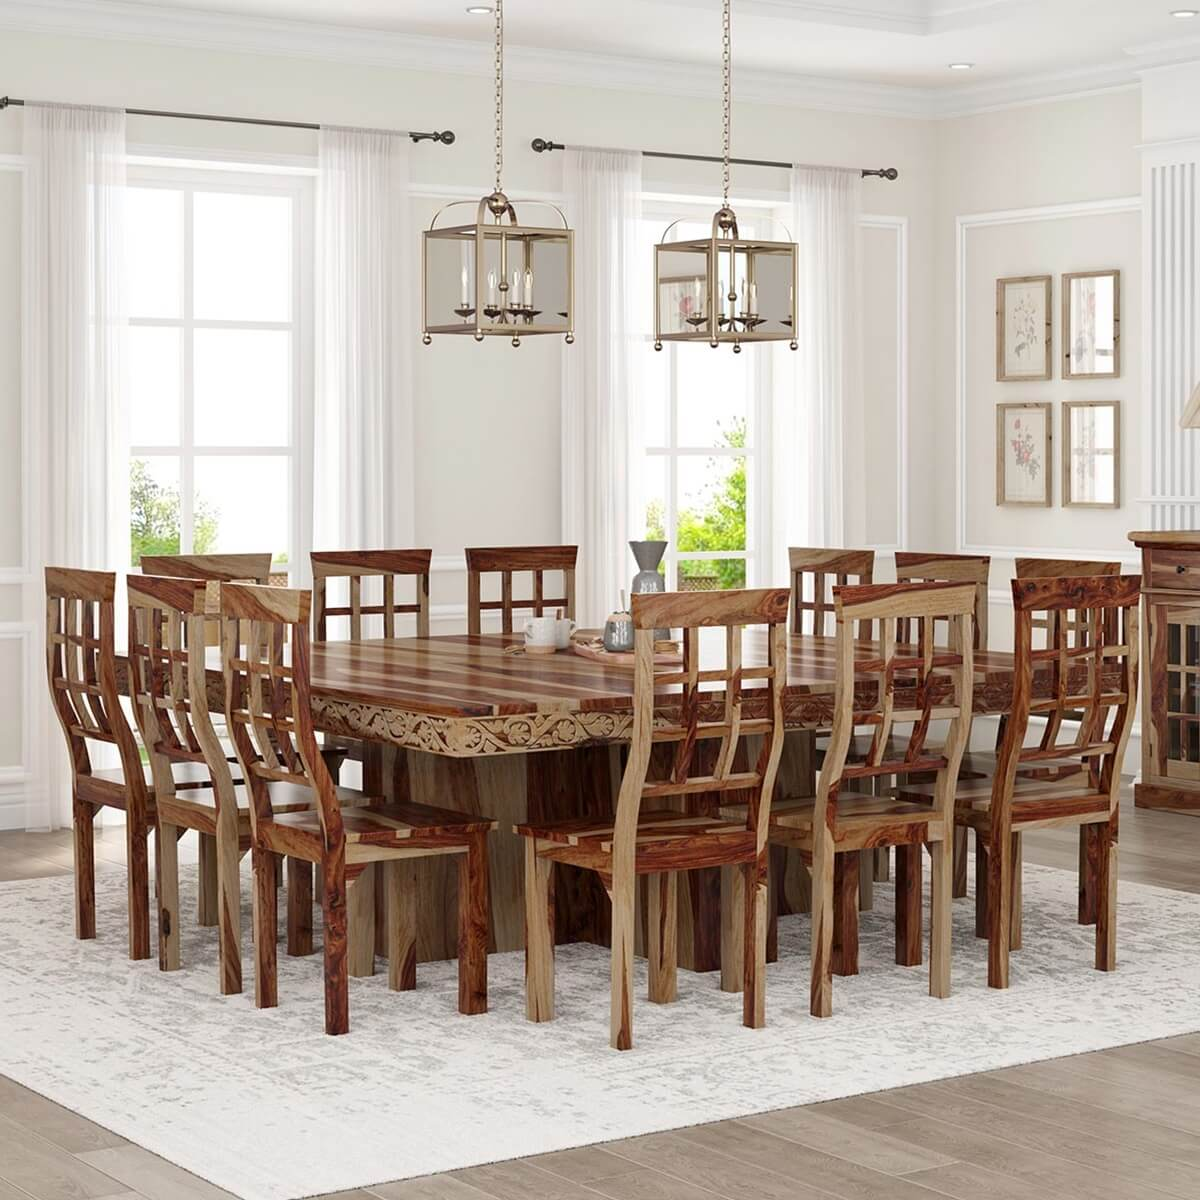 Dallas Ranch Large Square Dining Room Table and Chair Set For 12. Hover to zoom  sc 1 st  Sierra Living Concepts & Dallas Ranch Large Square Dining Room Table and Chair Set For 12